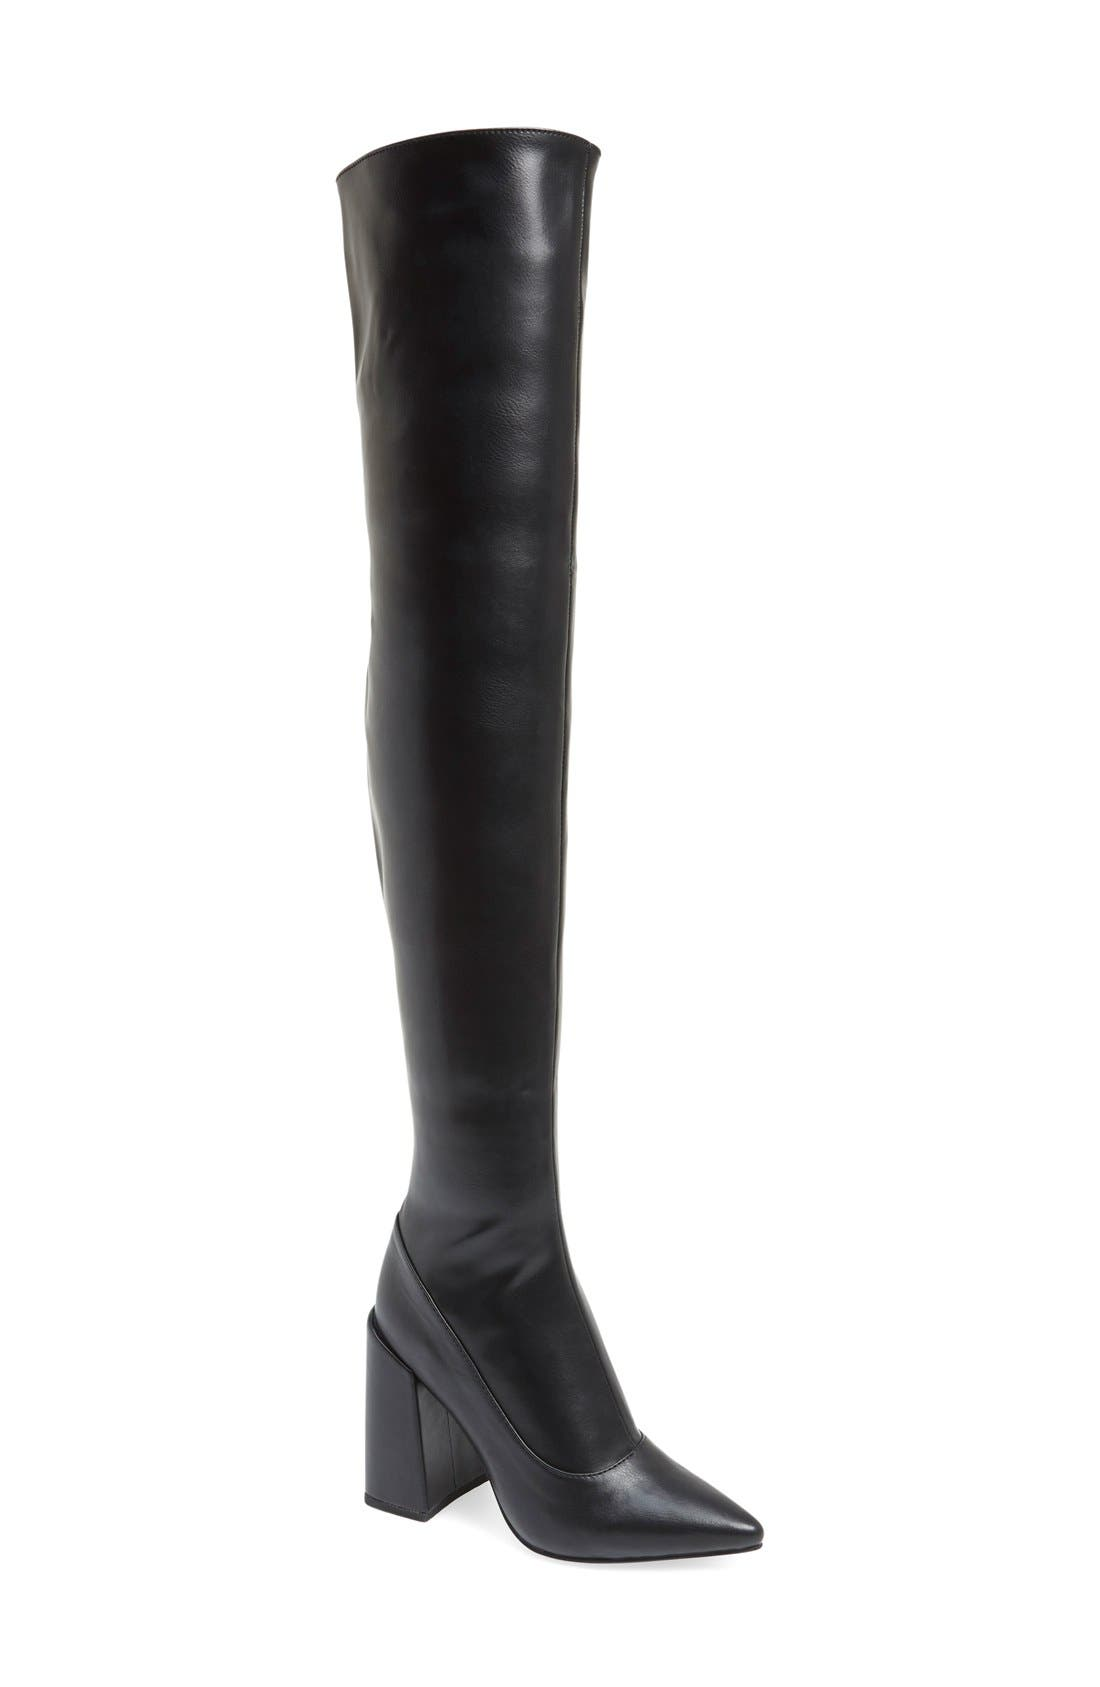 Main Image - Jeffrey Campbell 'Ransom' Over the Knee Boot (Women)